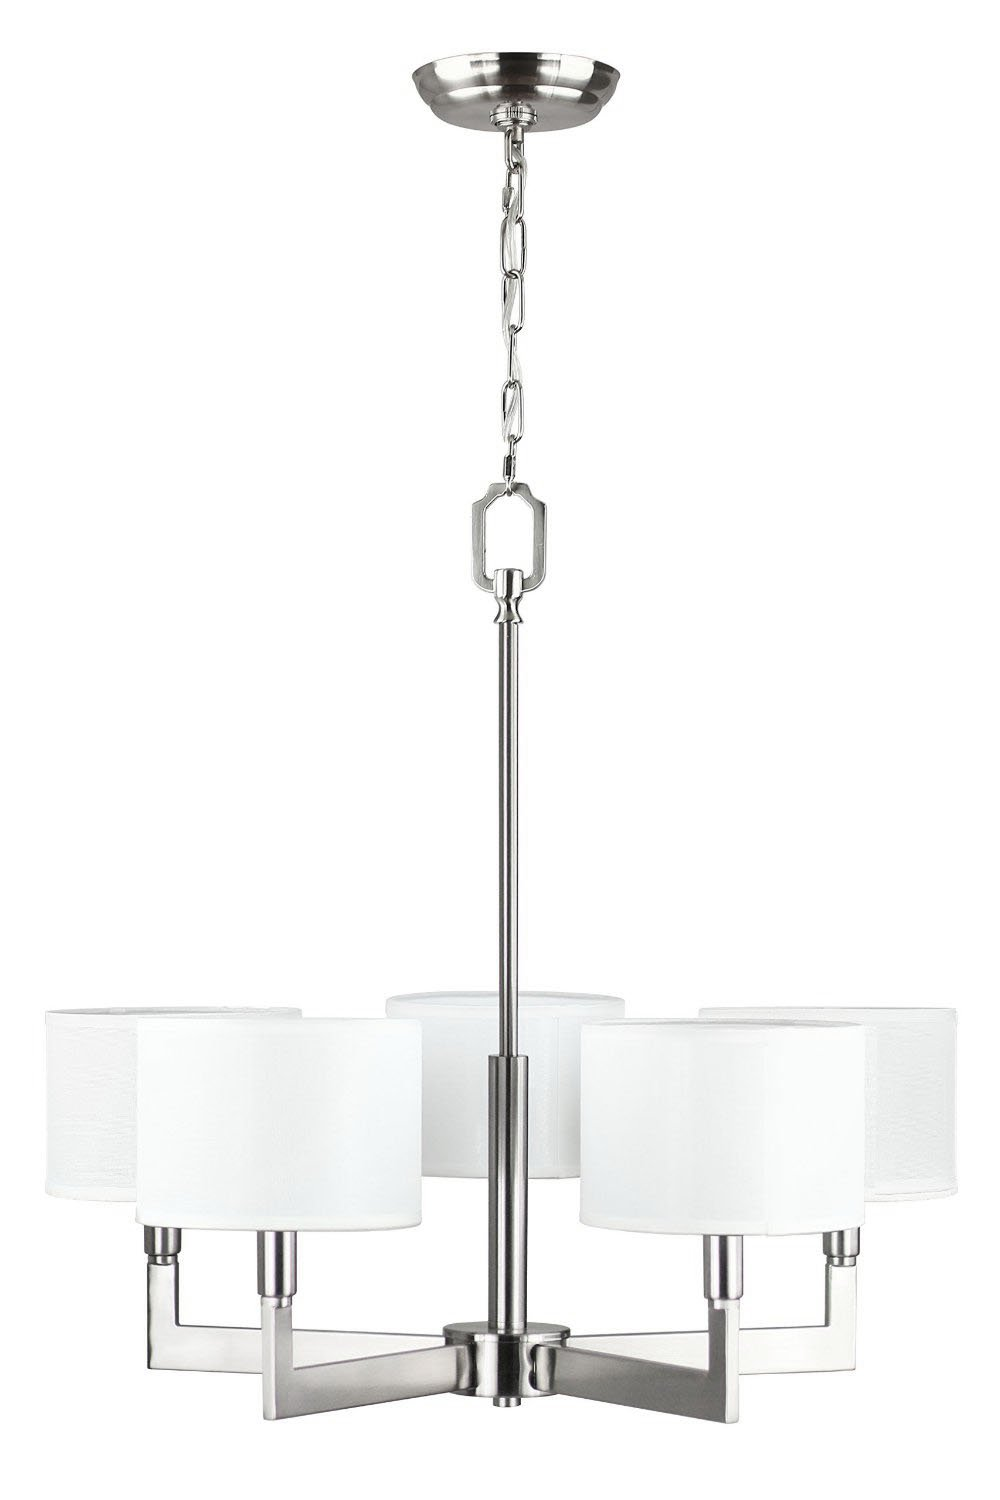 Allegro 5 Light Pendant Chandelier – Brushed Nickel w/ Fabric Shade - Linea di Liara LL-C135-BN by Linea di Liara